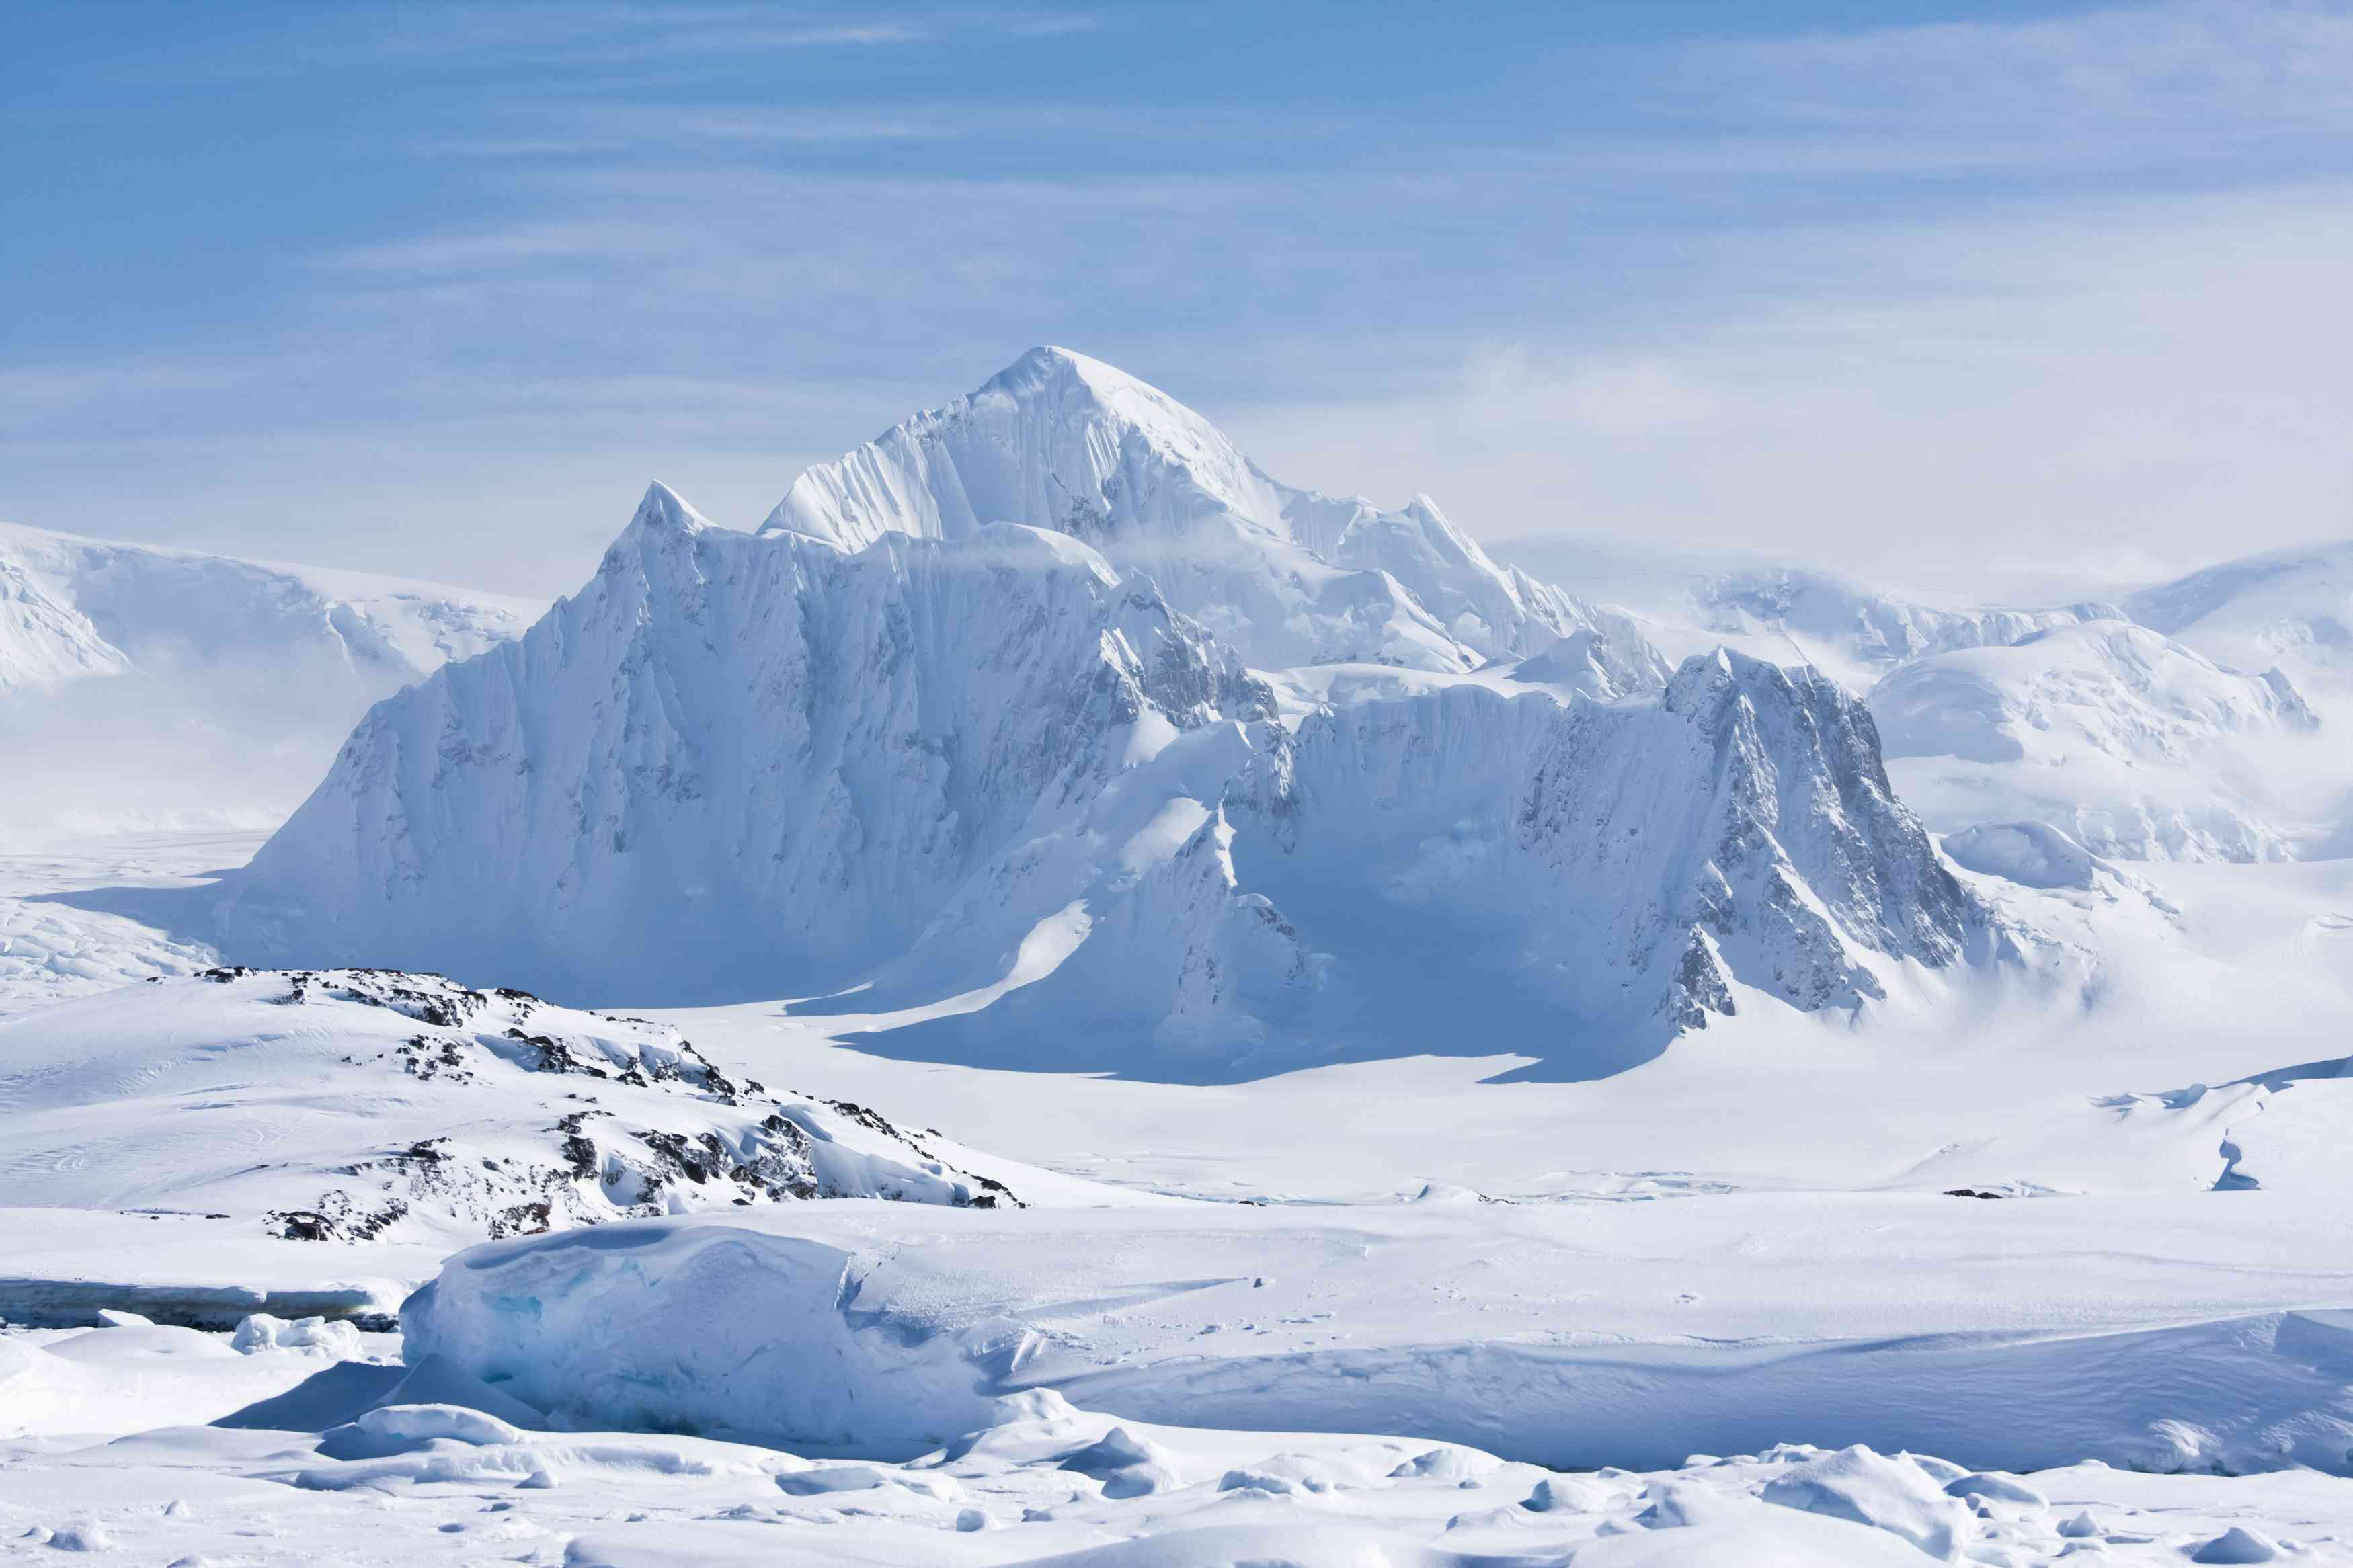 Snow-covered landscape and peaks in Antarctica